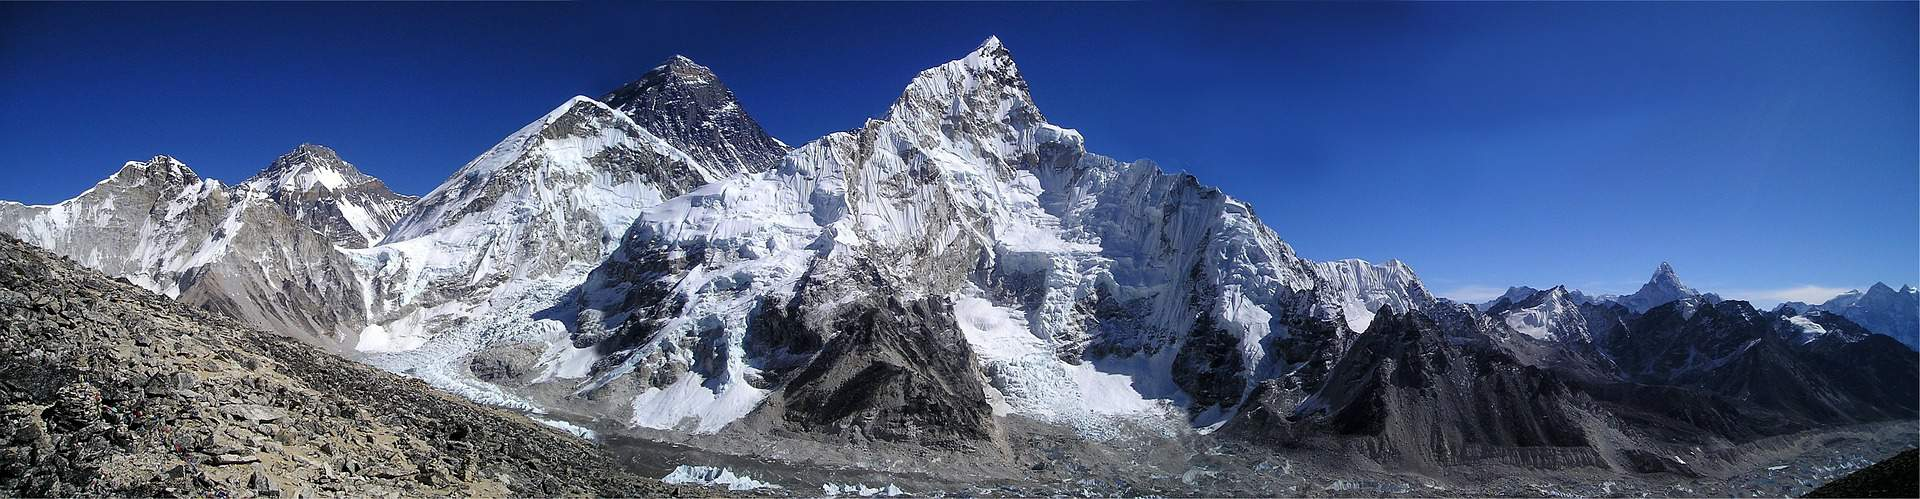 Himalaya Mount Everest mountain summit